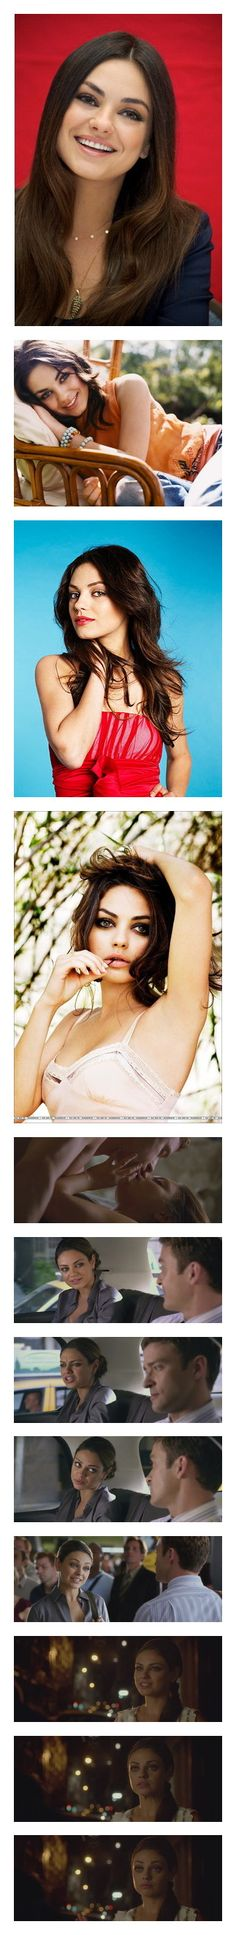 """fc;; mila kunis"" by andsunshine ❤ liked on Polyvore featuring milakunis, faceclaim, mila kunis, faces, people, celebrities and editorials"